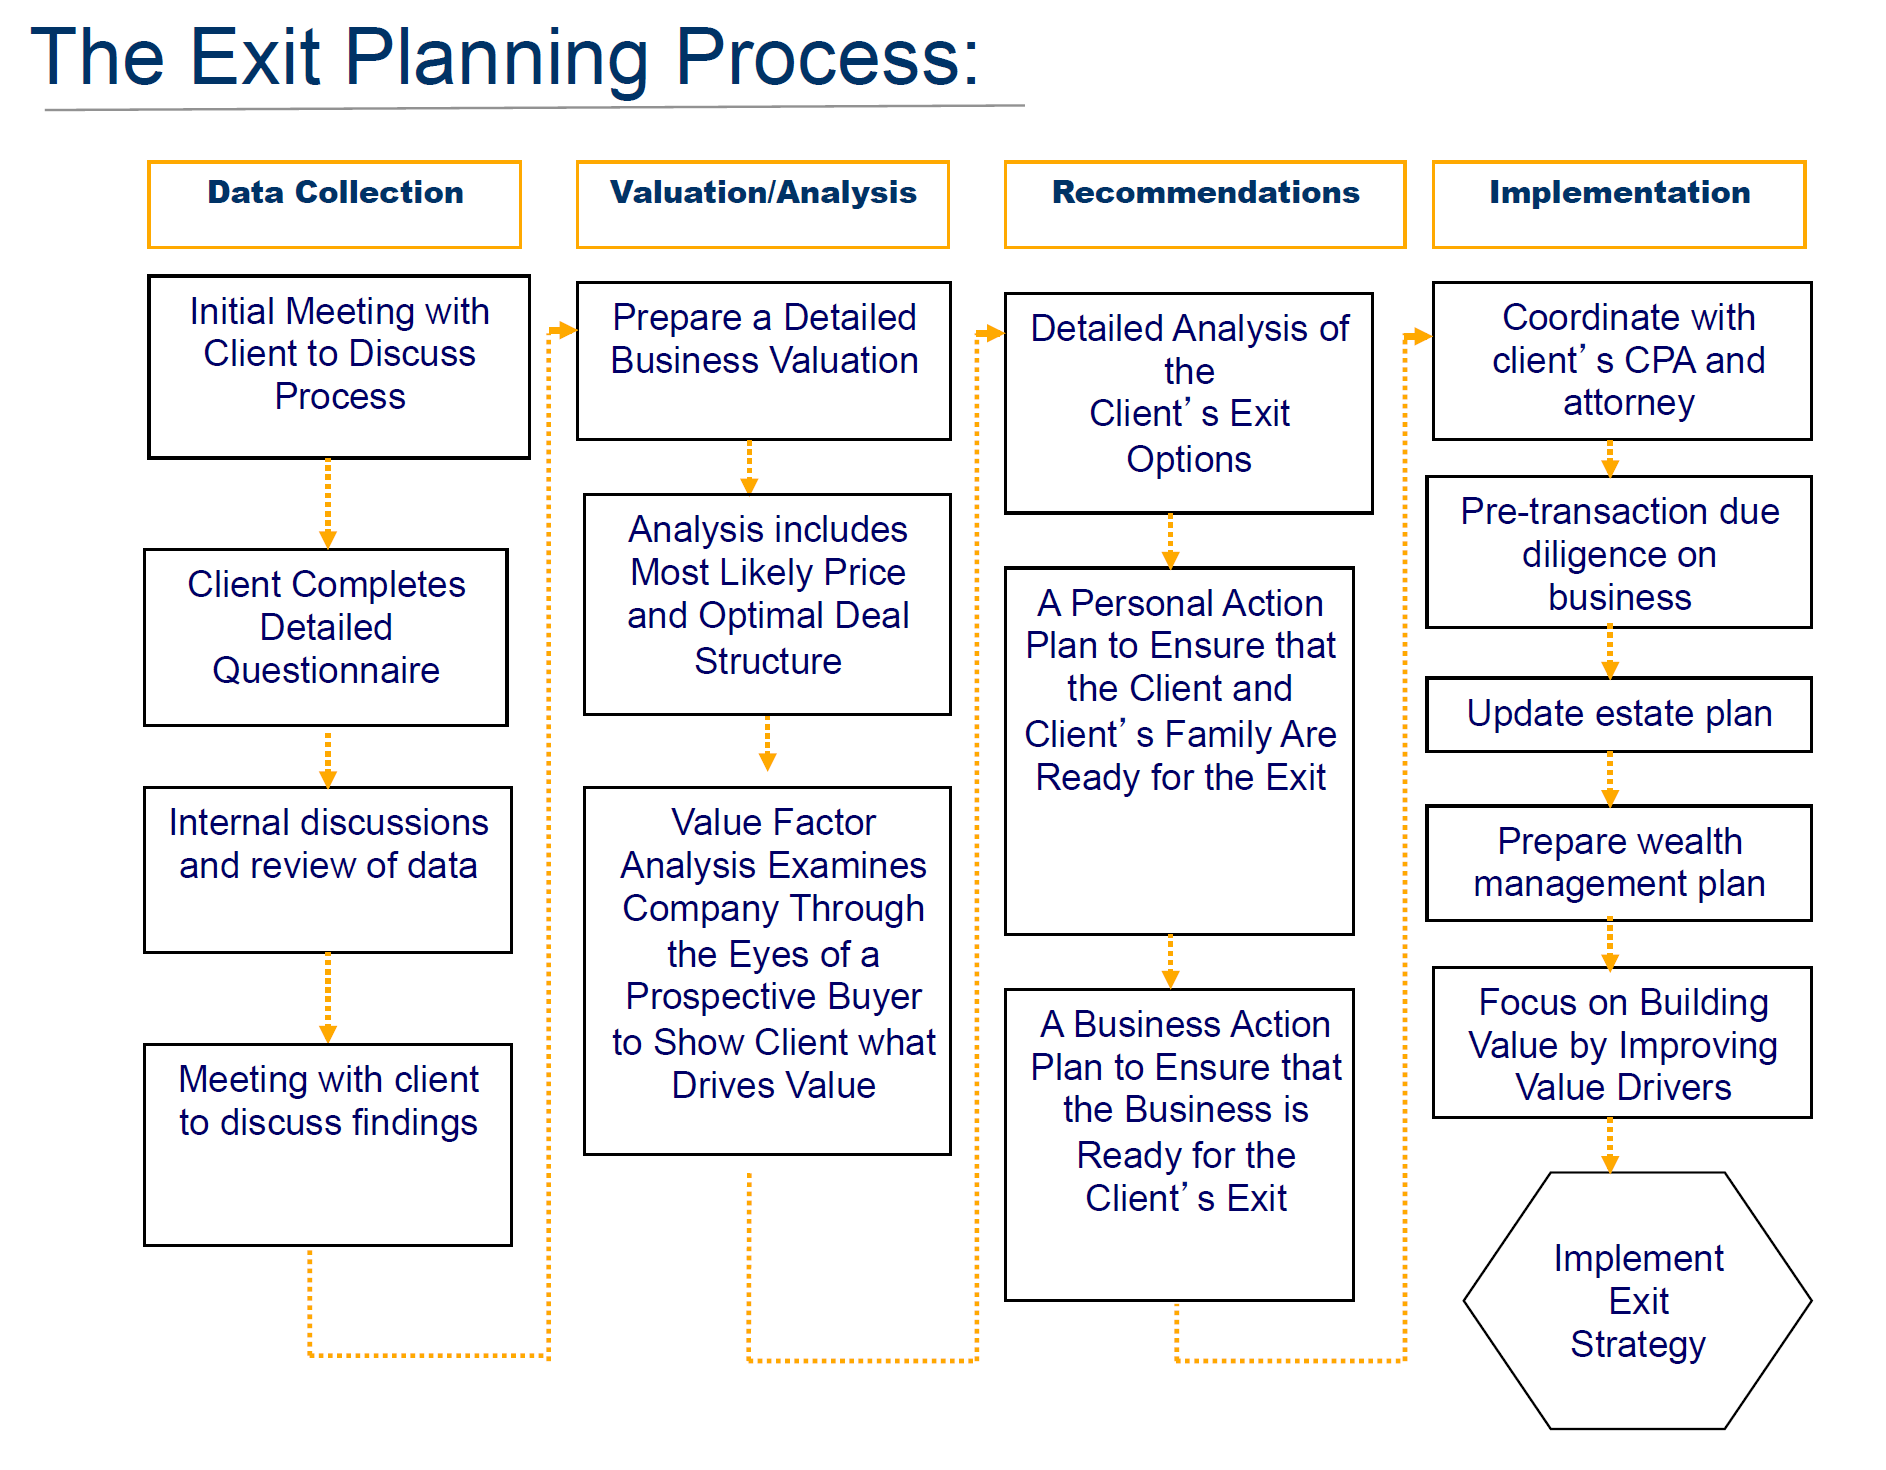 The Exit Planning Process from Business Succession Advisers, LLC